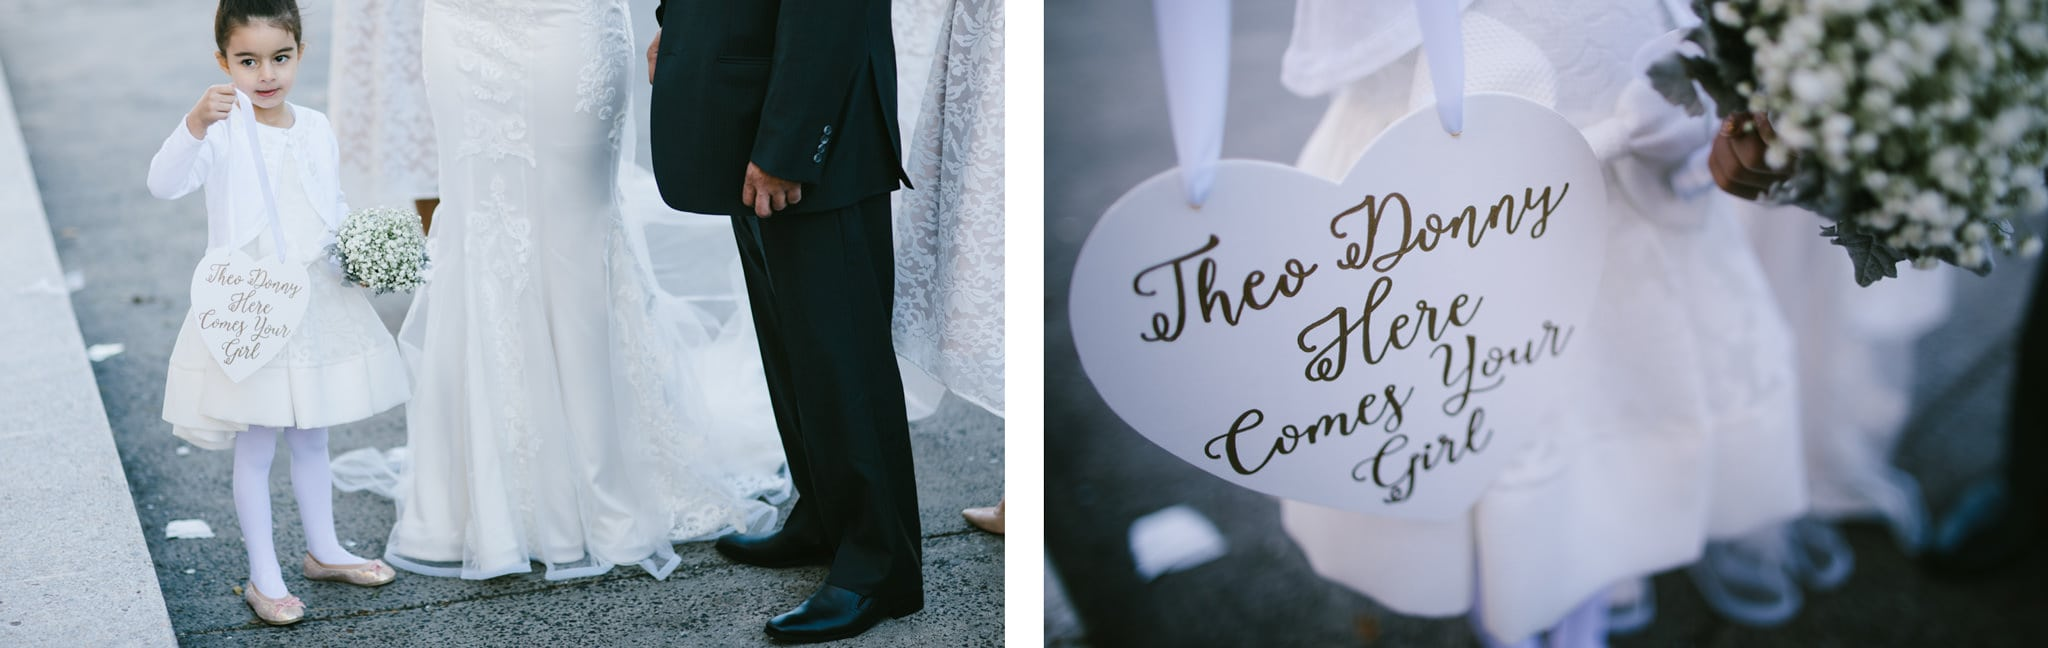 little girl holds sign at wedding - wedding photo ideas